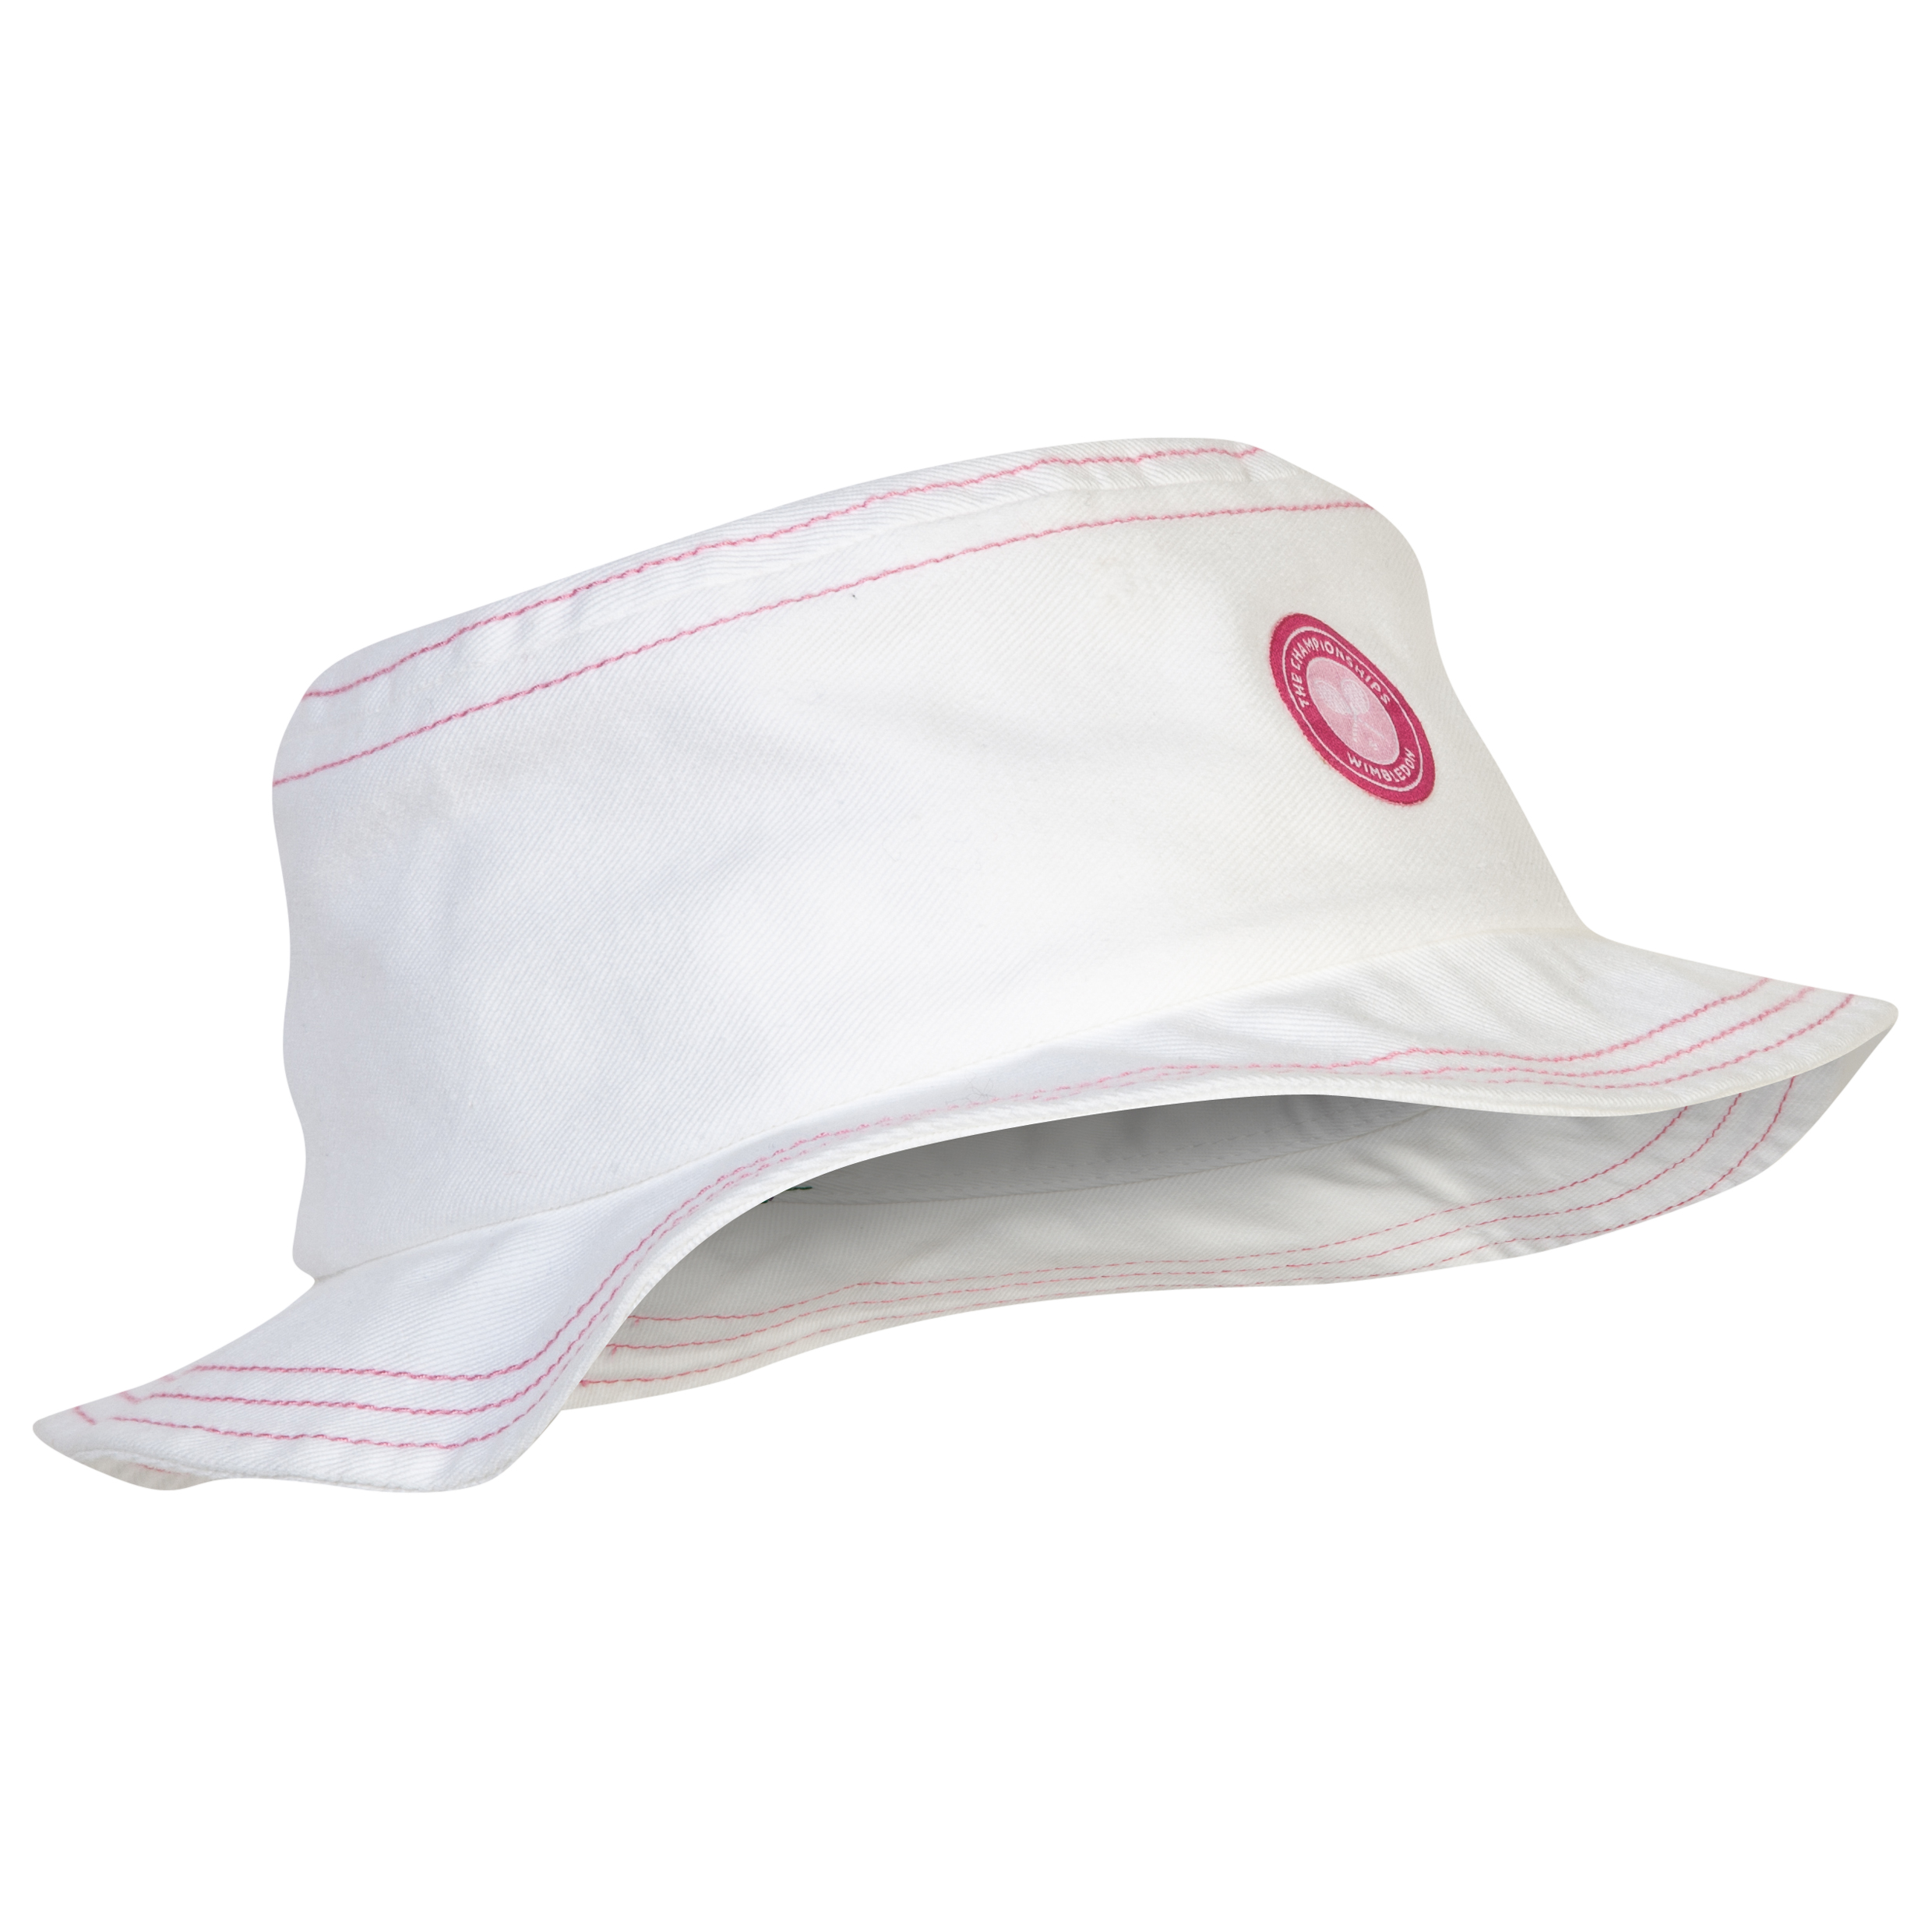 Wimbledon Baby Girls Sun Hat - Infant White